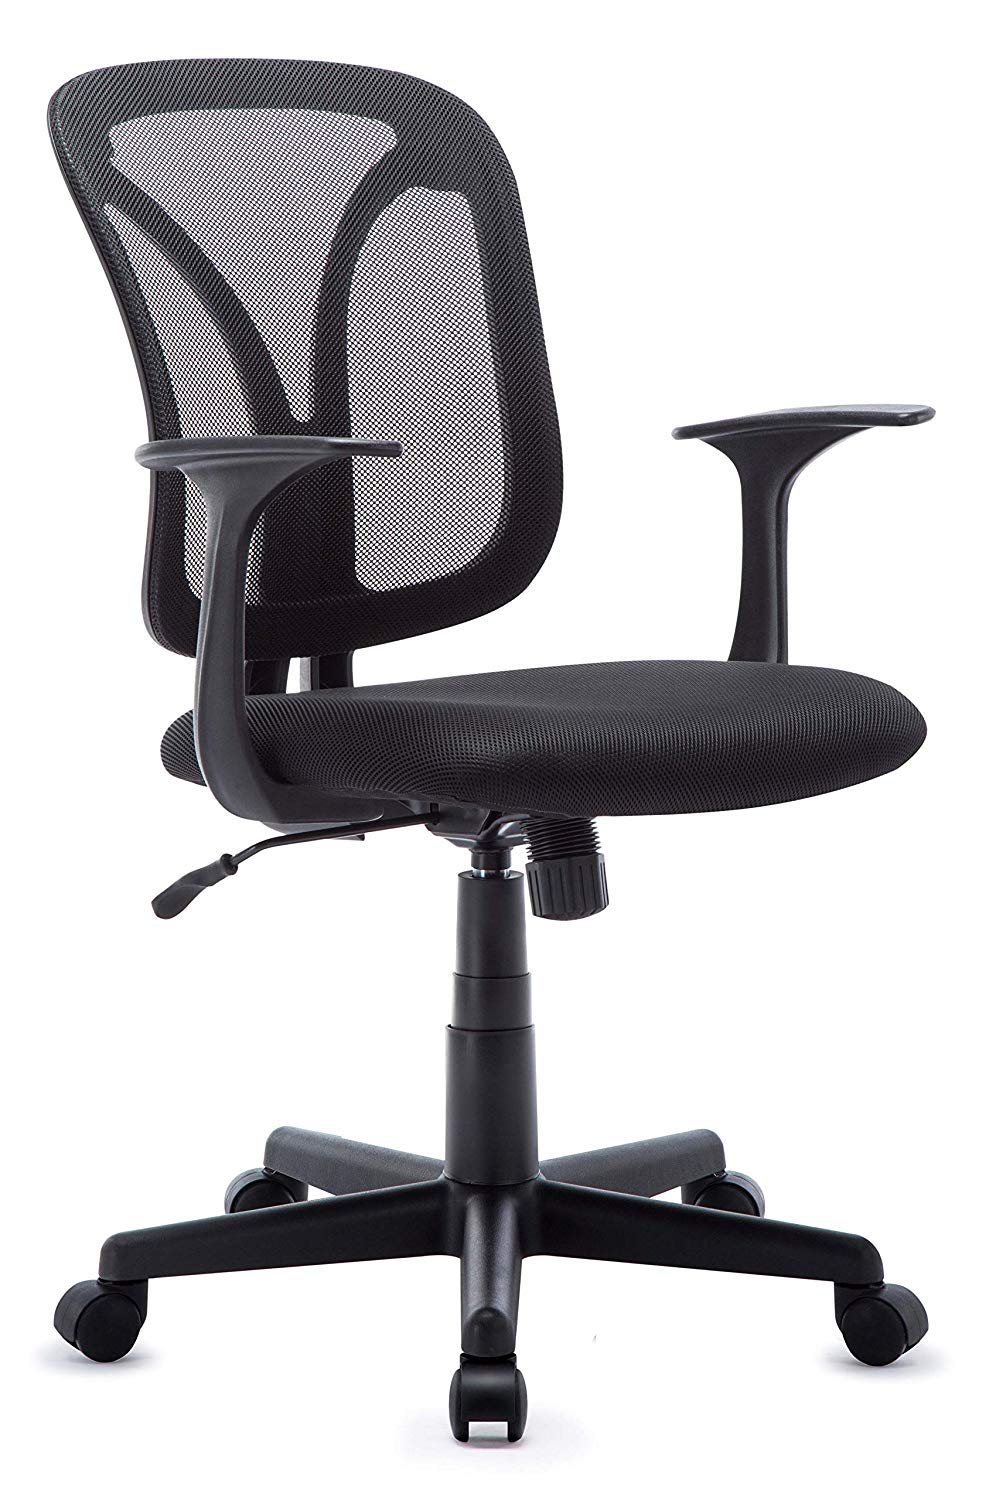 Ergonomic Fabric Mesh Office Chair Medium Back Padded Desk Chair For Bedroom Adjustable Swivel Chair With Back And Arms